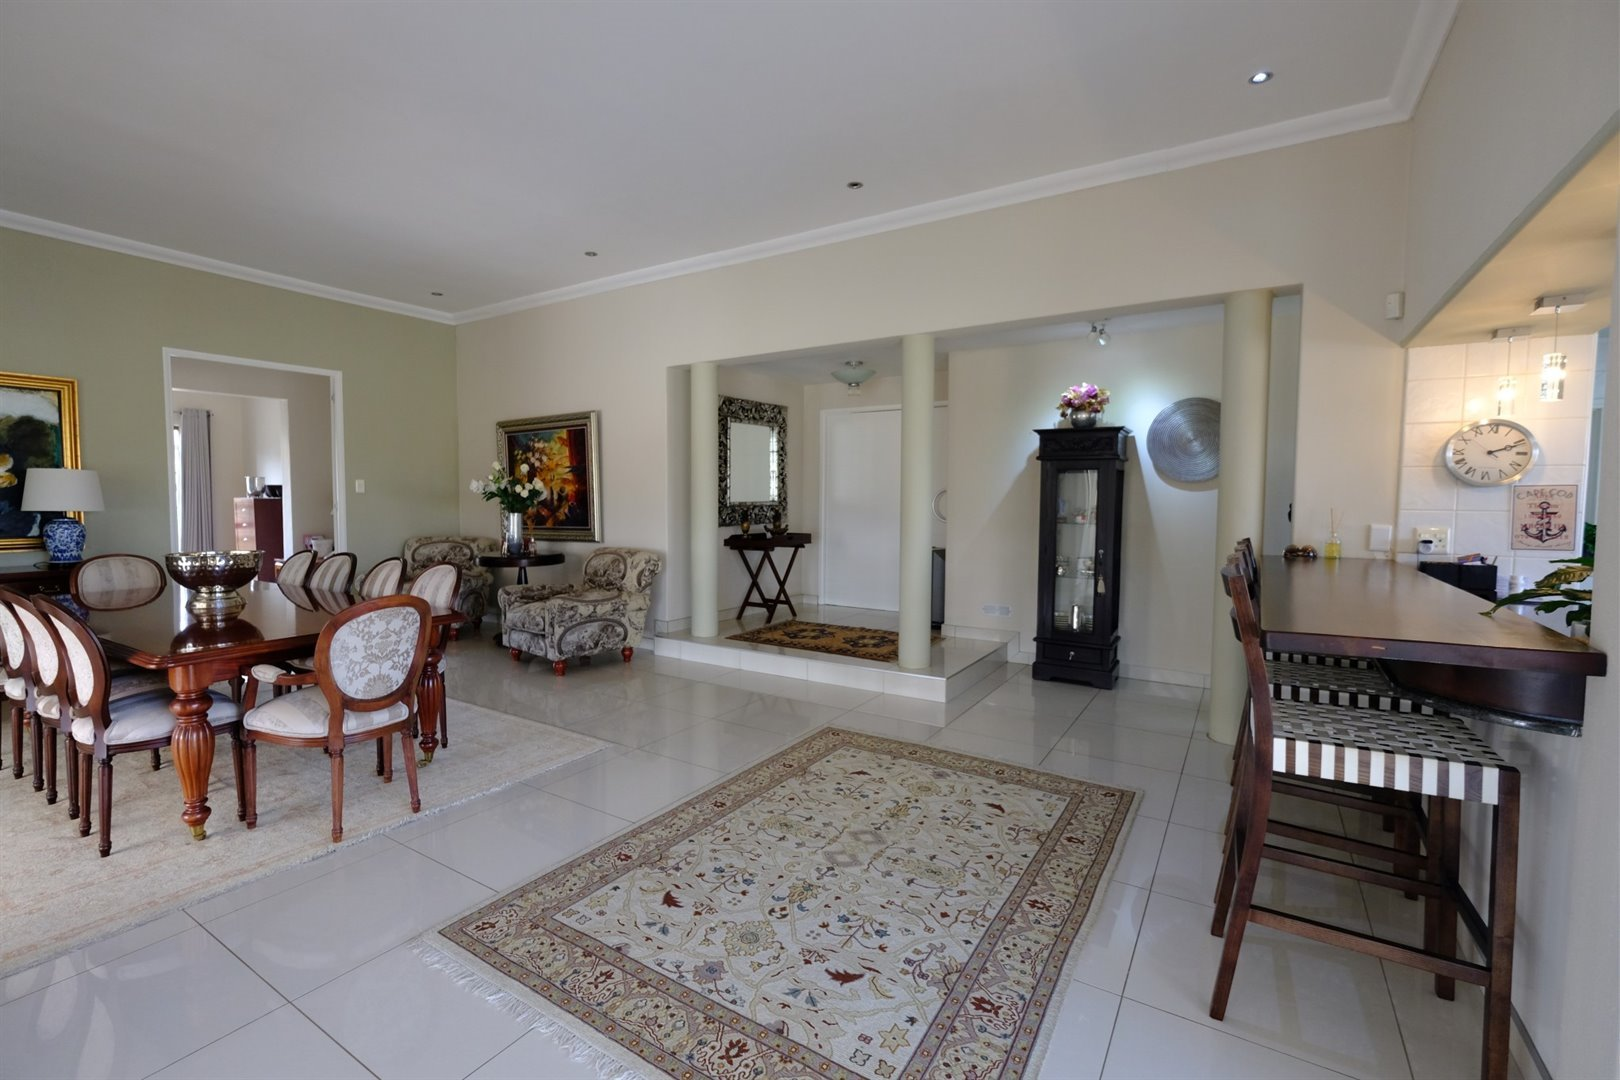 Three Rivers East property for sale. Ref No: 13378538. Picture no 12